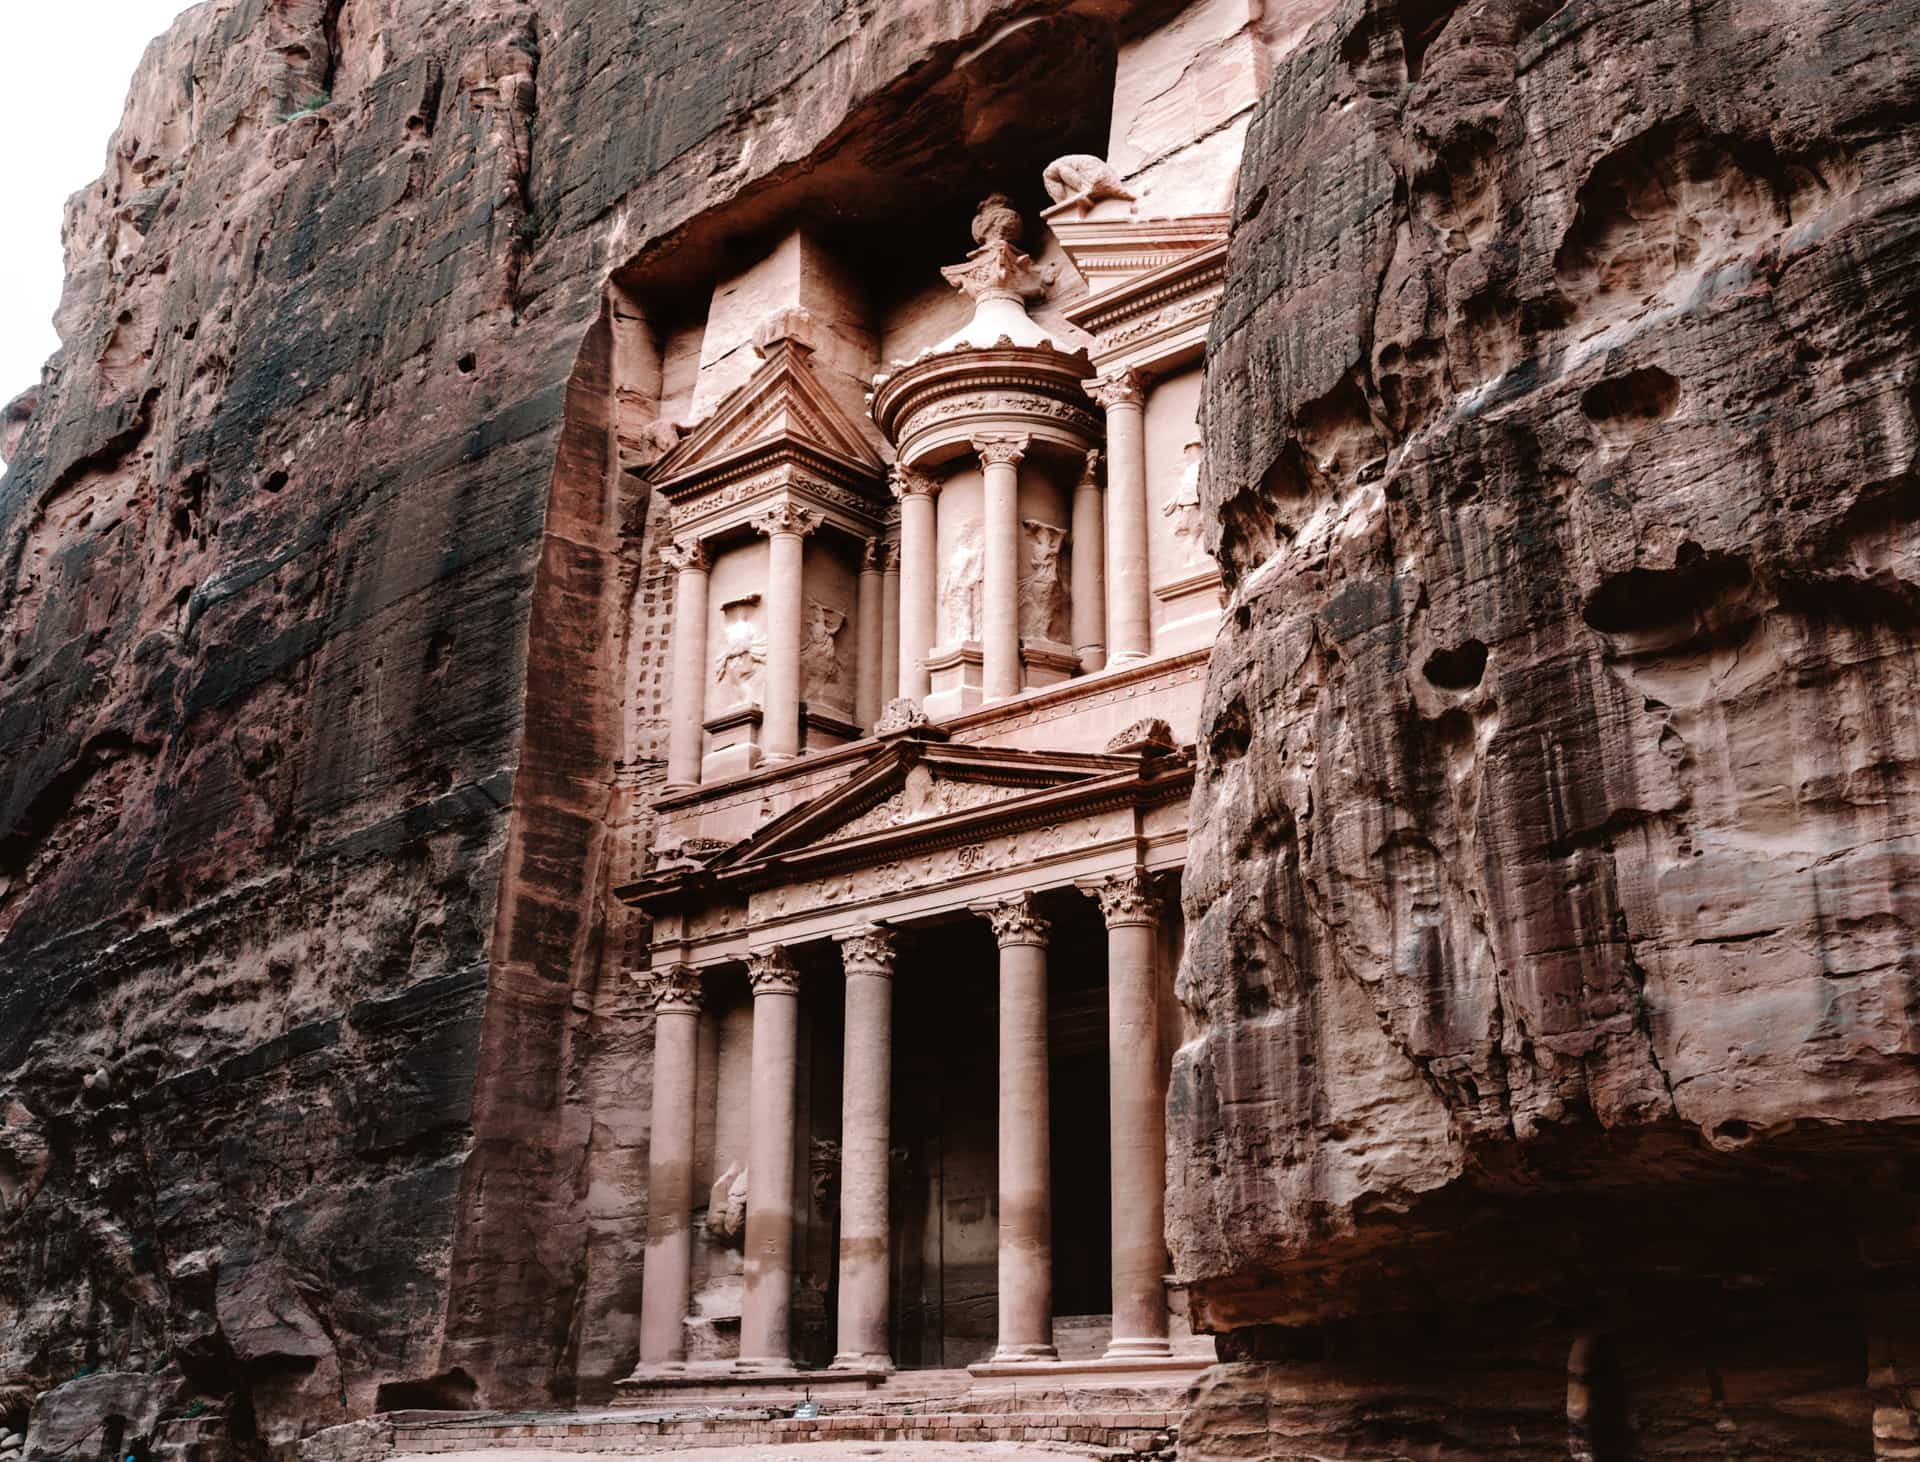 petra jordan travel guide